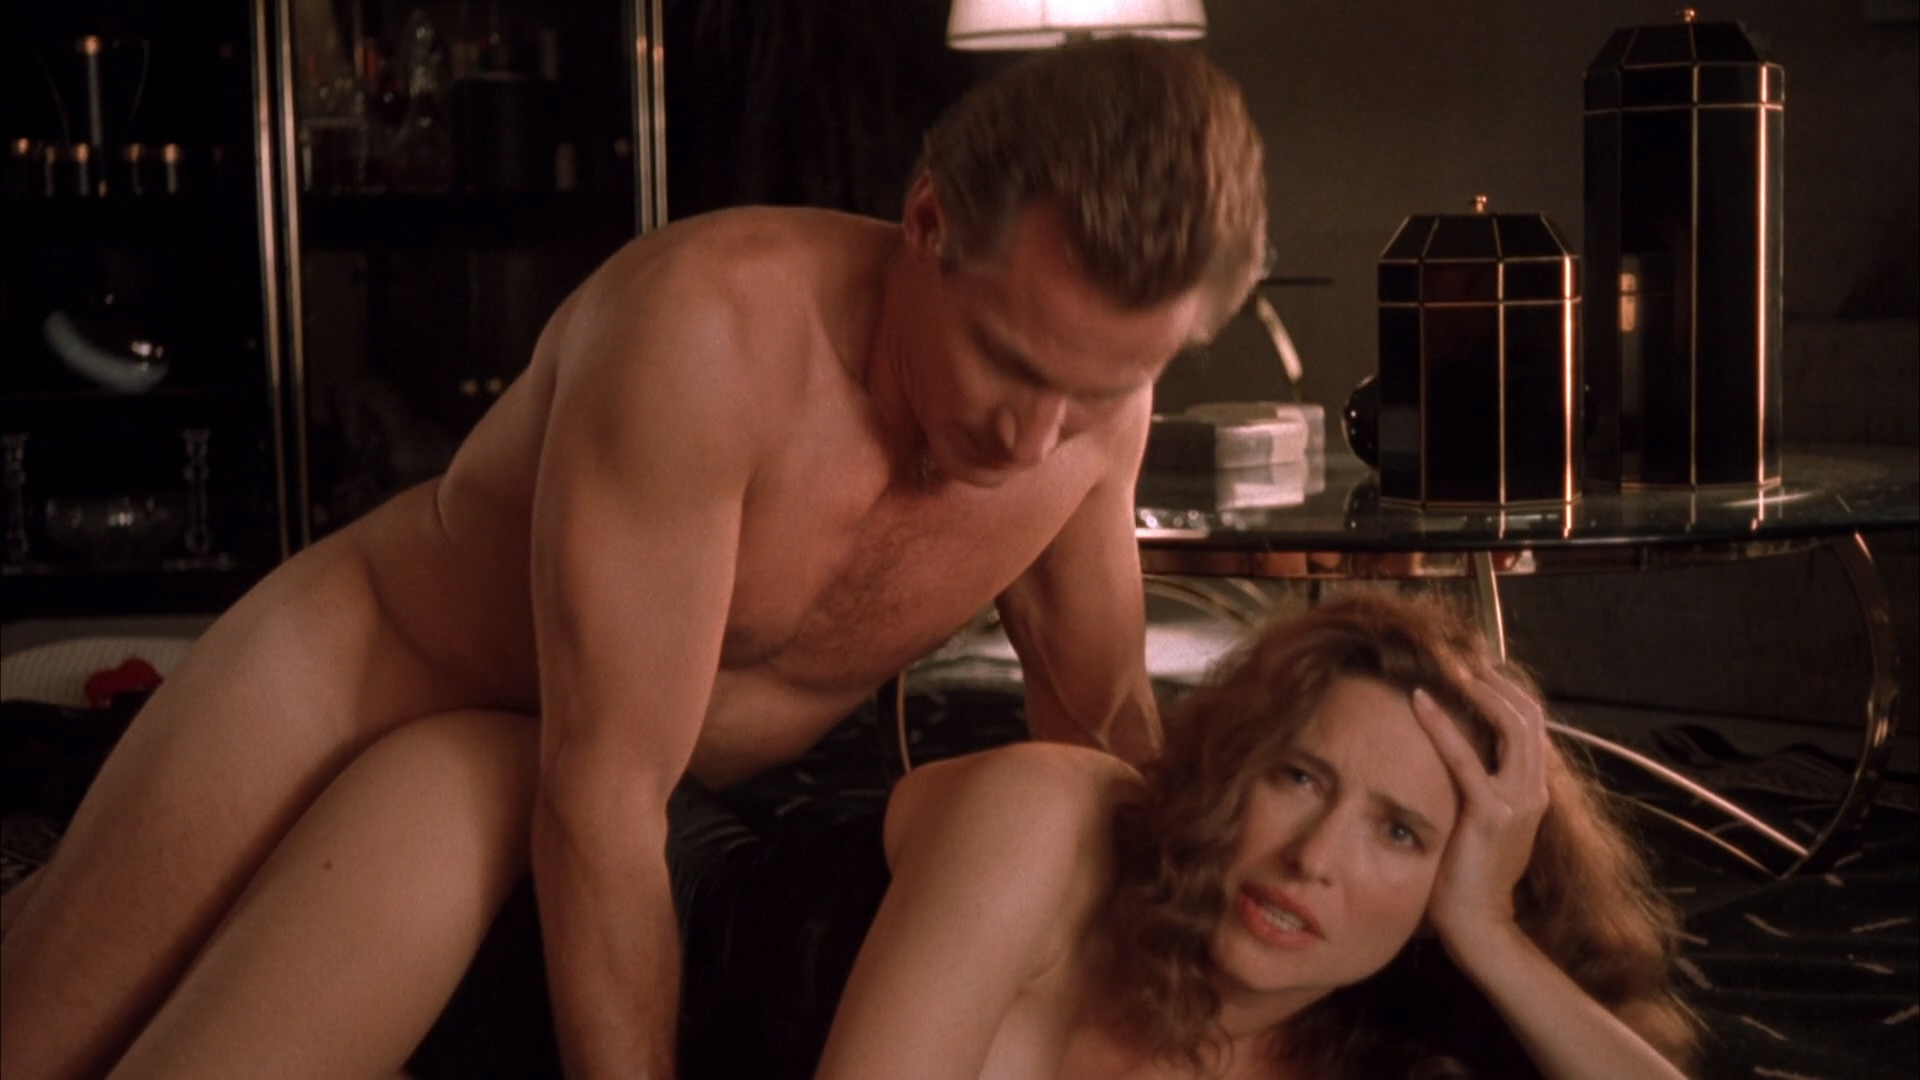 mimi rogers sexy nude